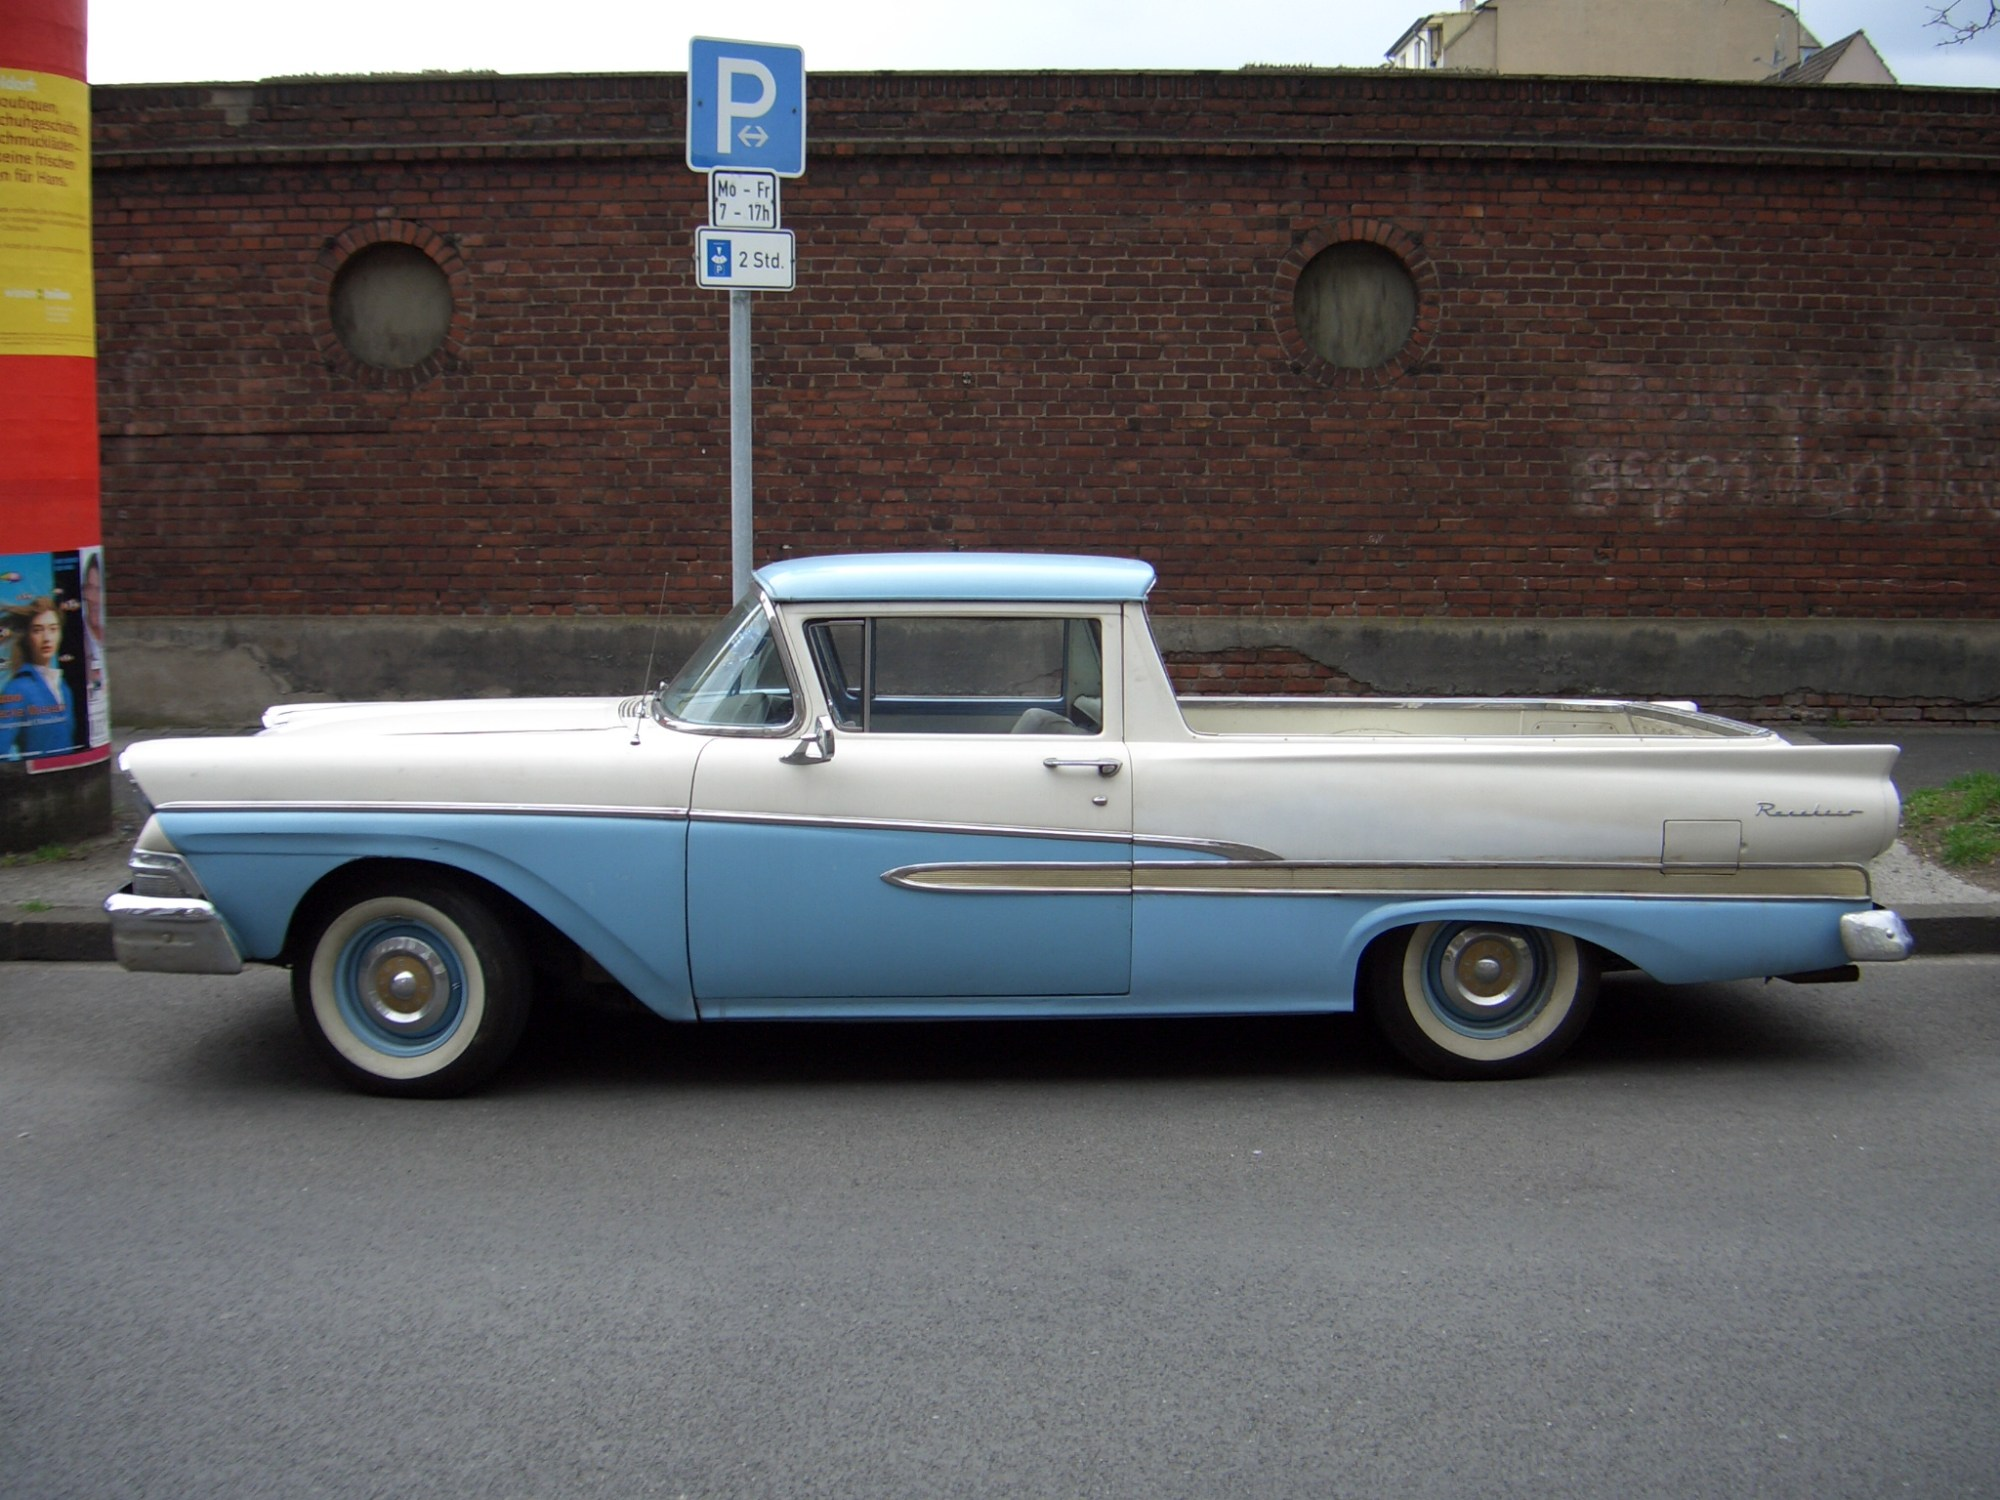 hight resolution of file ford ranchero 1958 side 2006 04 08 a jpg